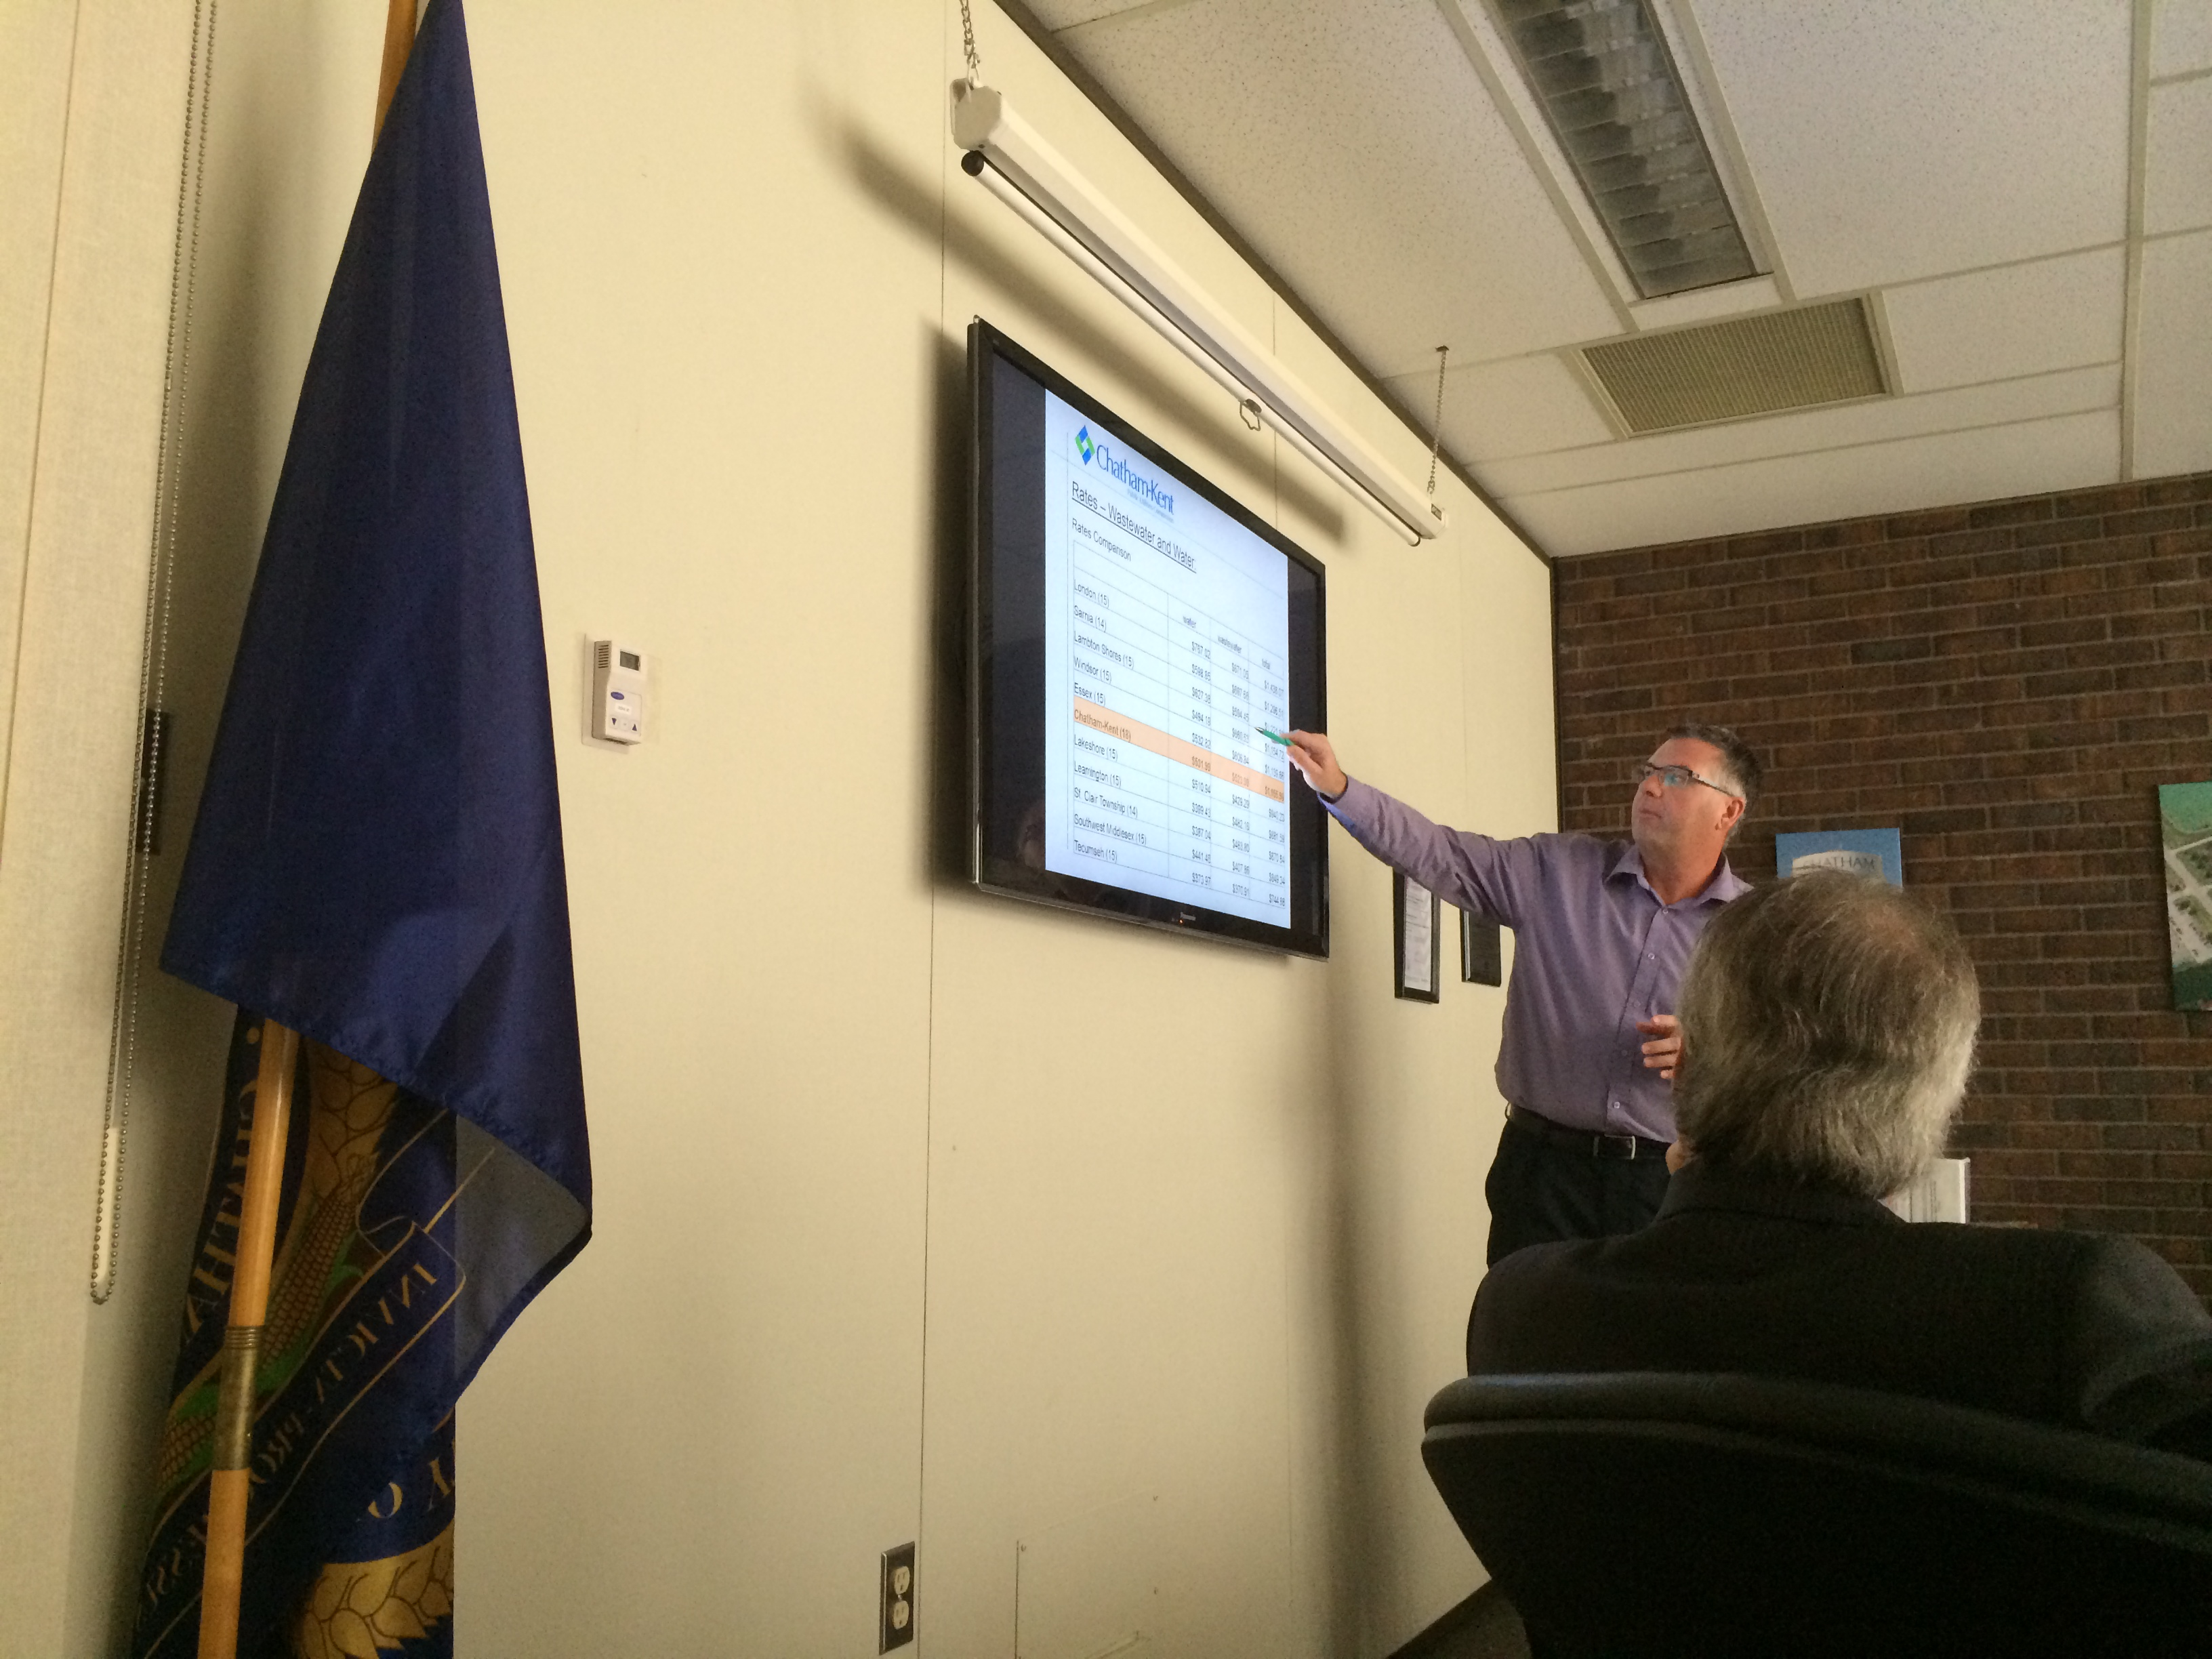 The Chatham-Kent Public Utilities Commission General Manager Tom Kissner points to a chart during a presentation at a meeting on February 12, 2015 in Chatham. (Photo by Ricardo Veneza)